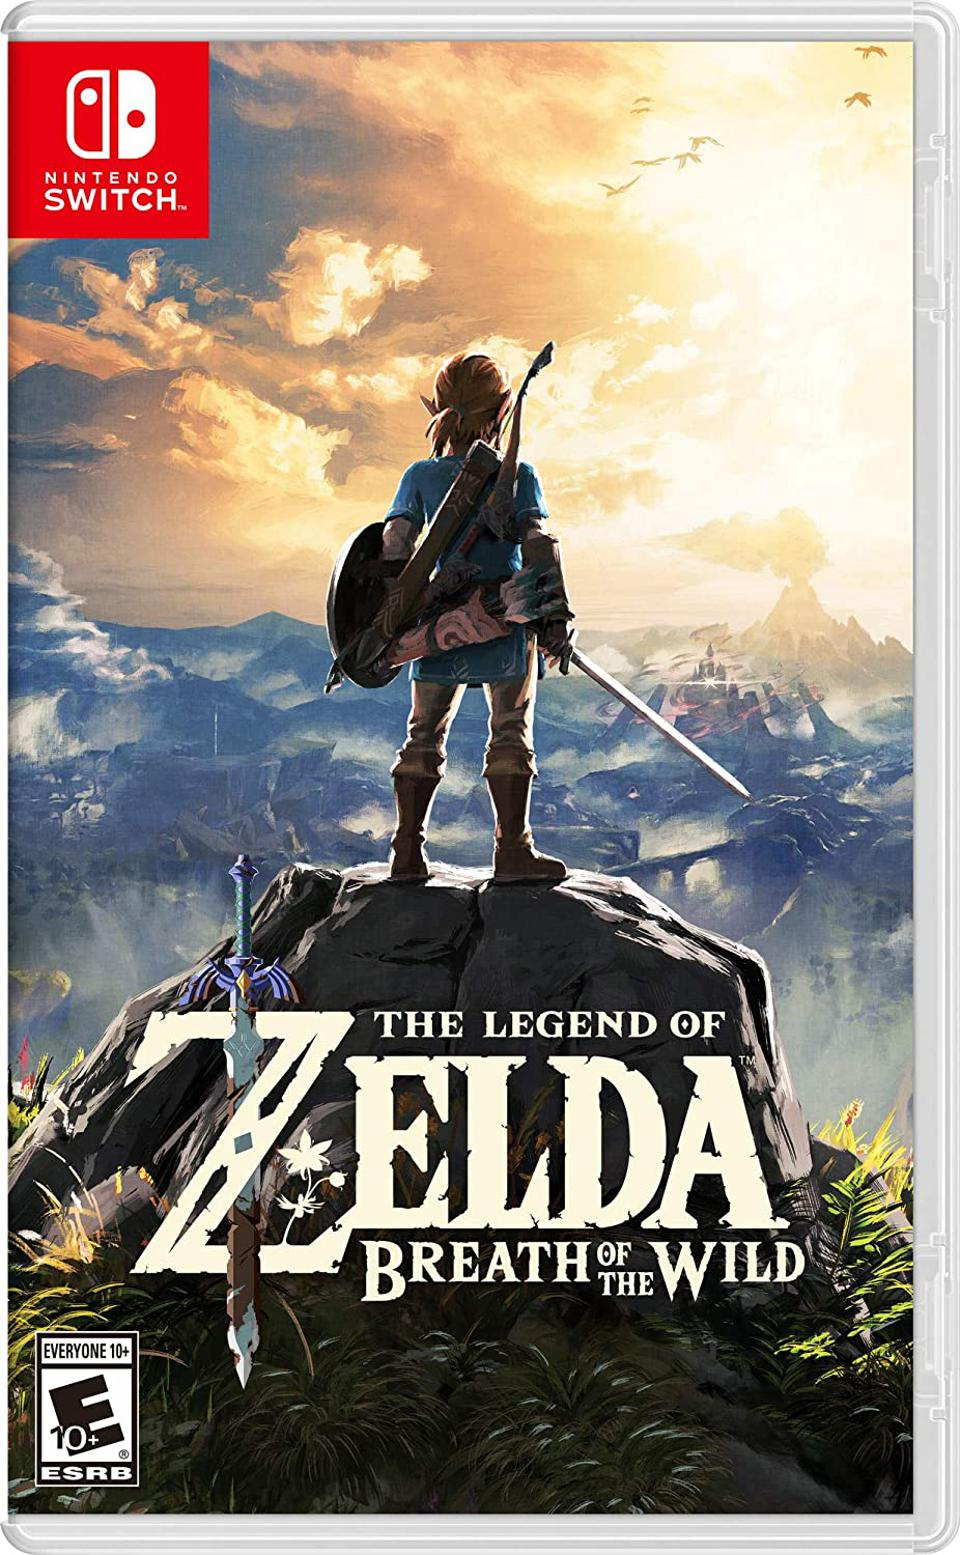 The Legend of Zelda: Breath of the Wild for Nintendo Switch Retail Packaging